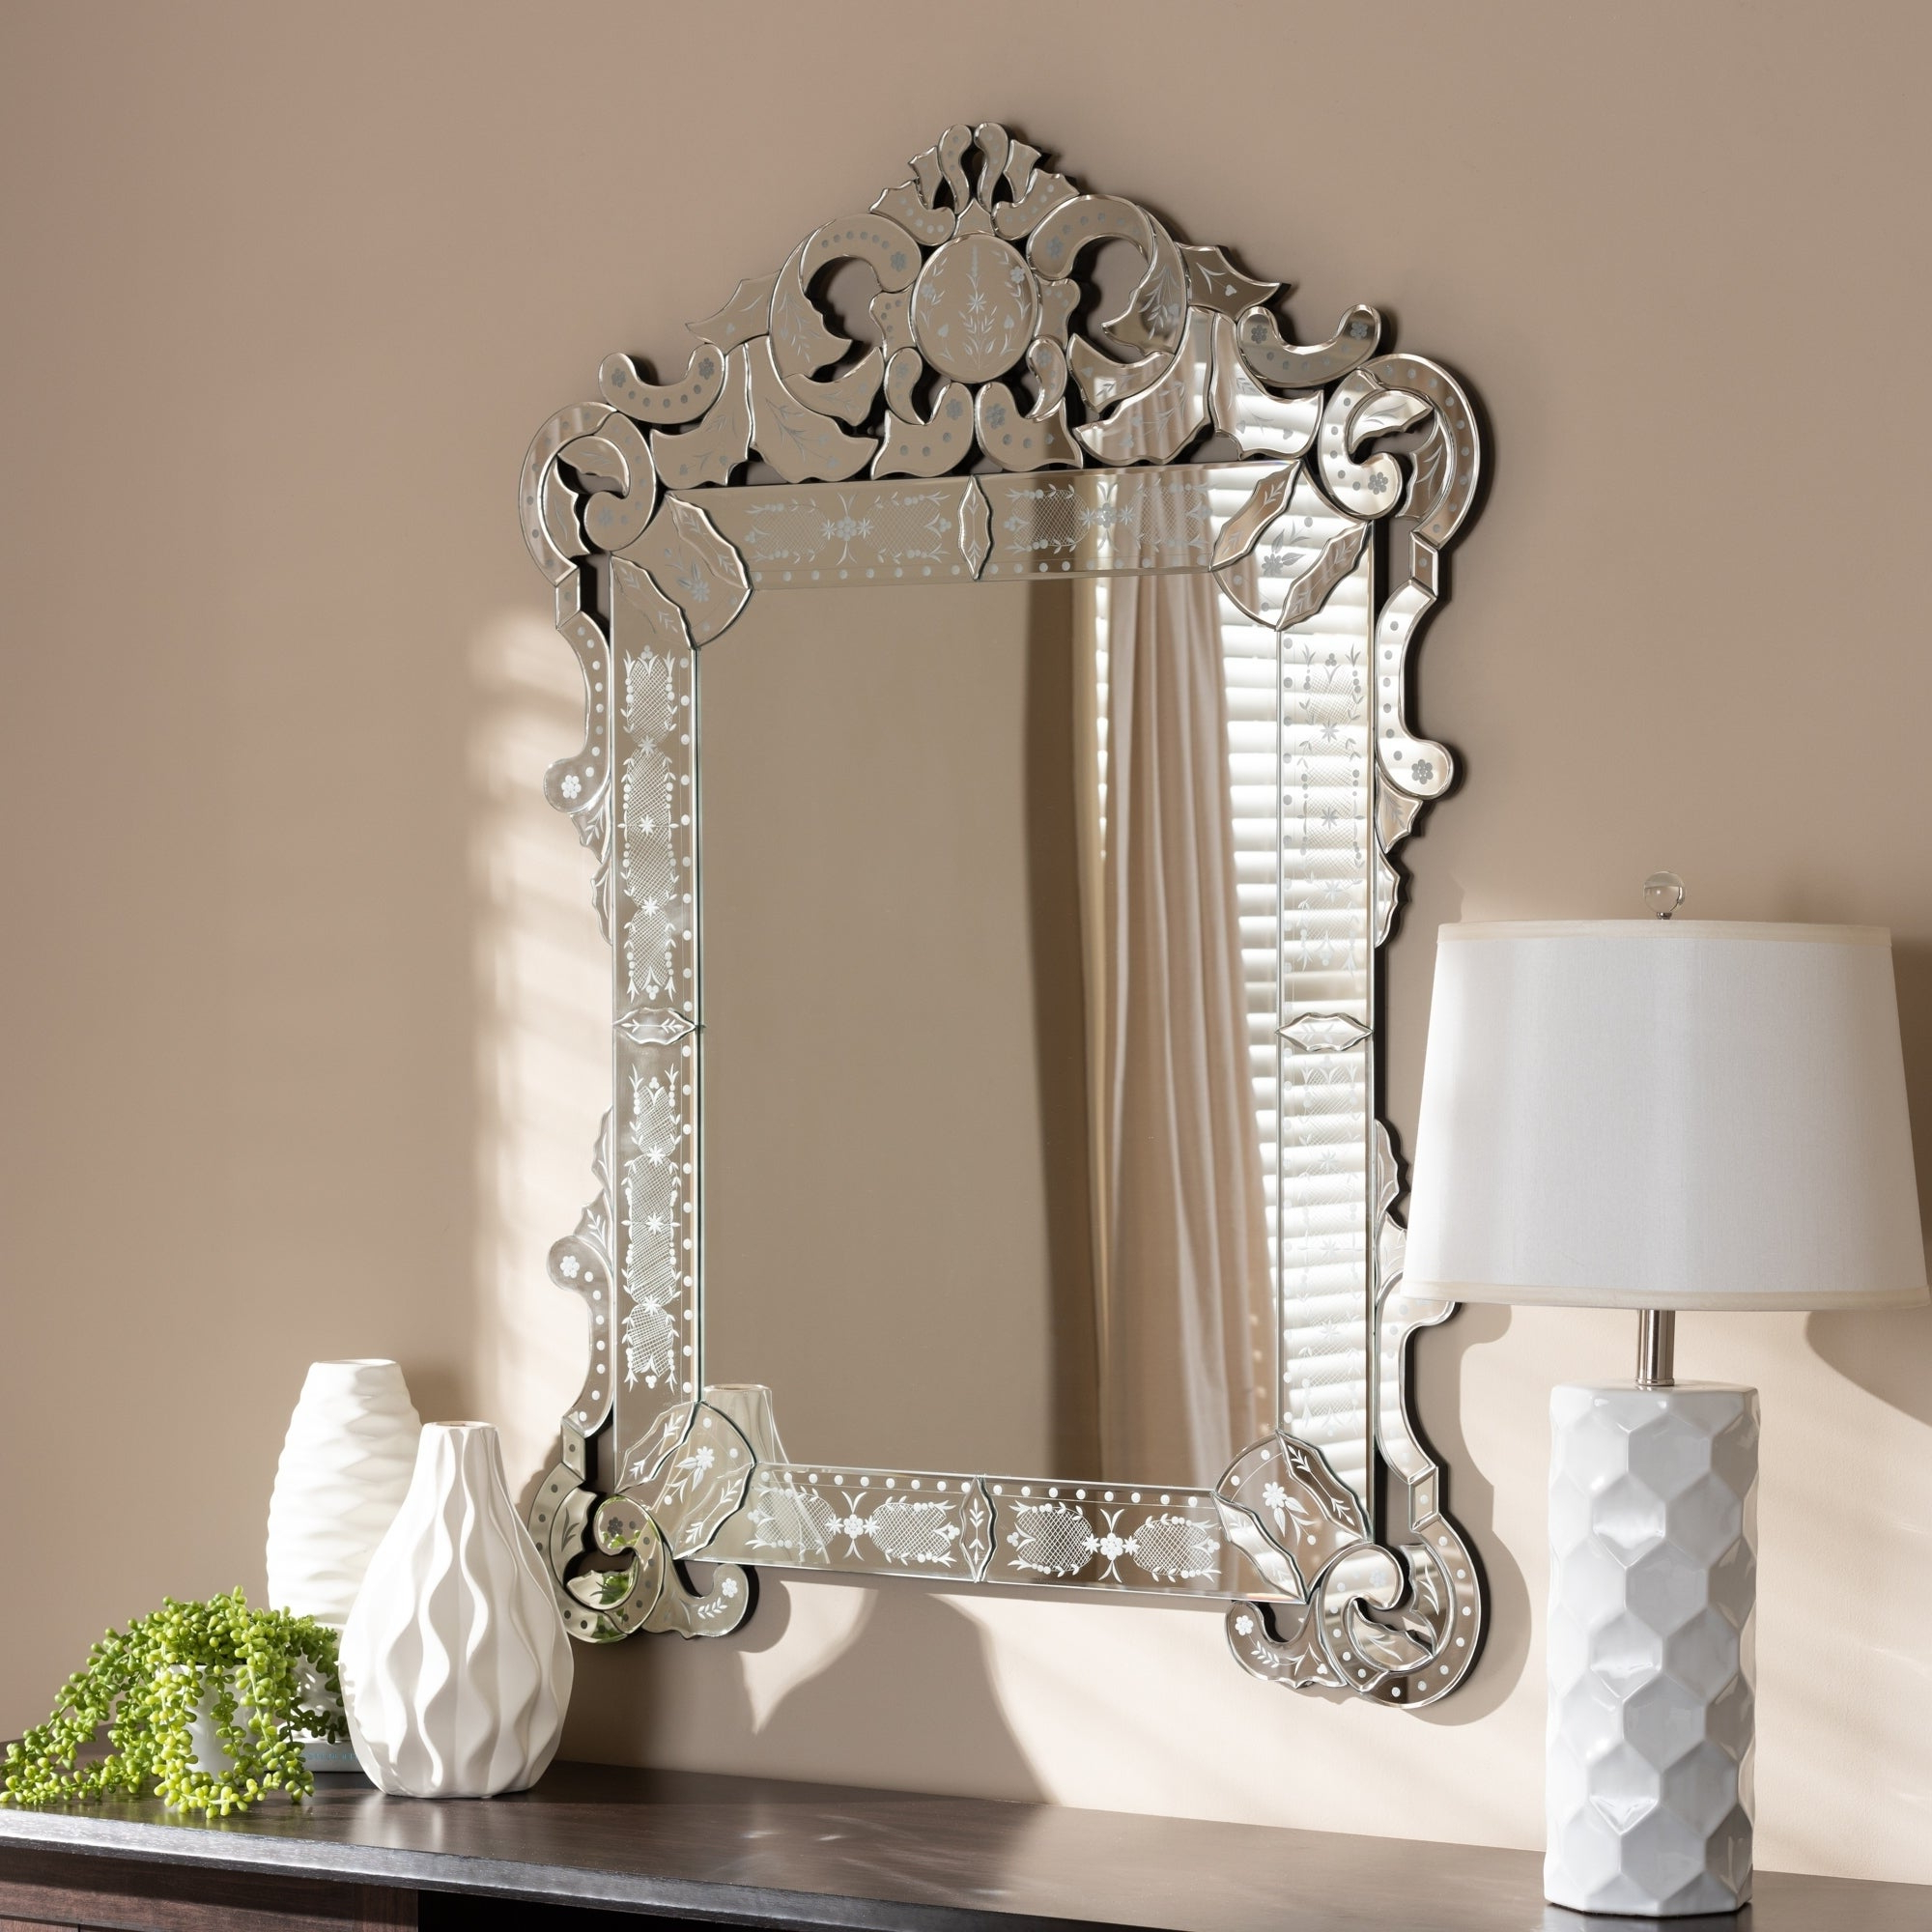 Widely Used Venetian Style Wall Mirrors Throughout Traditional Silver Venetian Style Wall Mirrorbaxton Studio – Antique Silver (View 5 of 20)